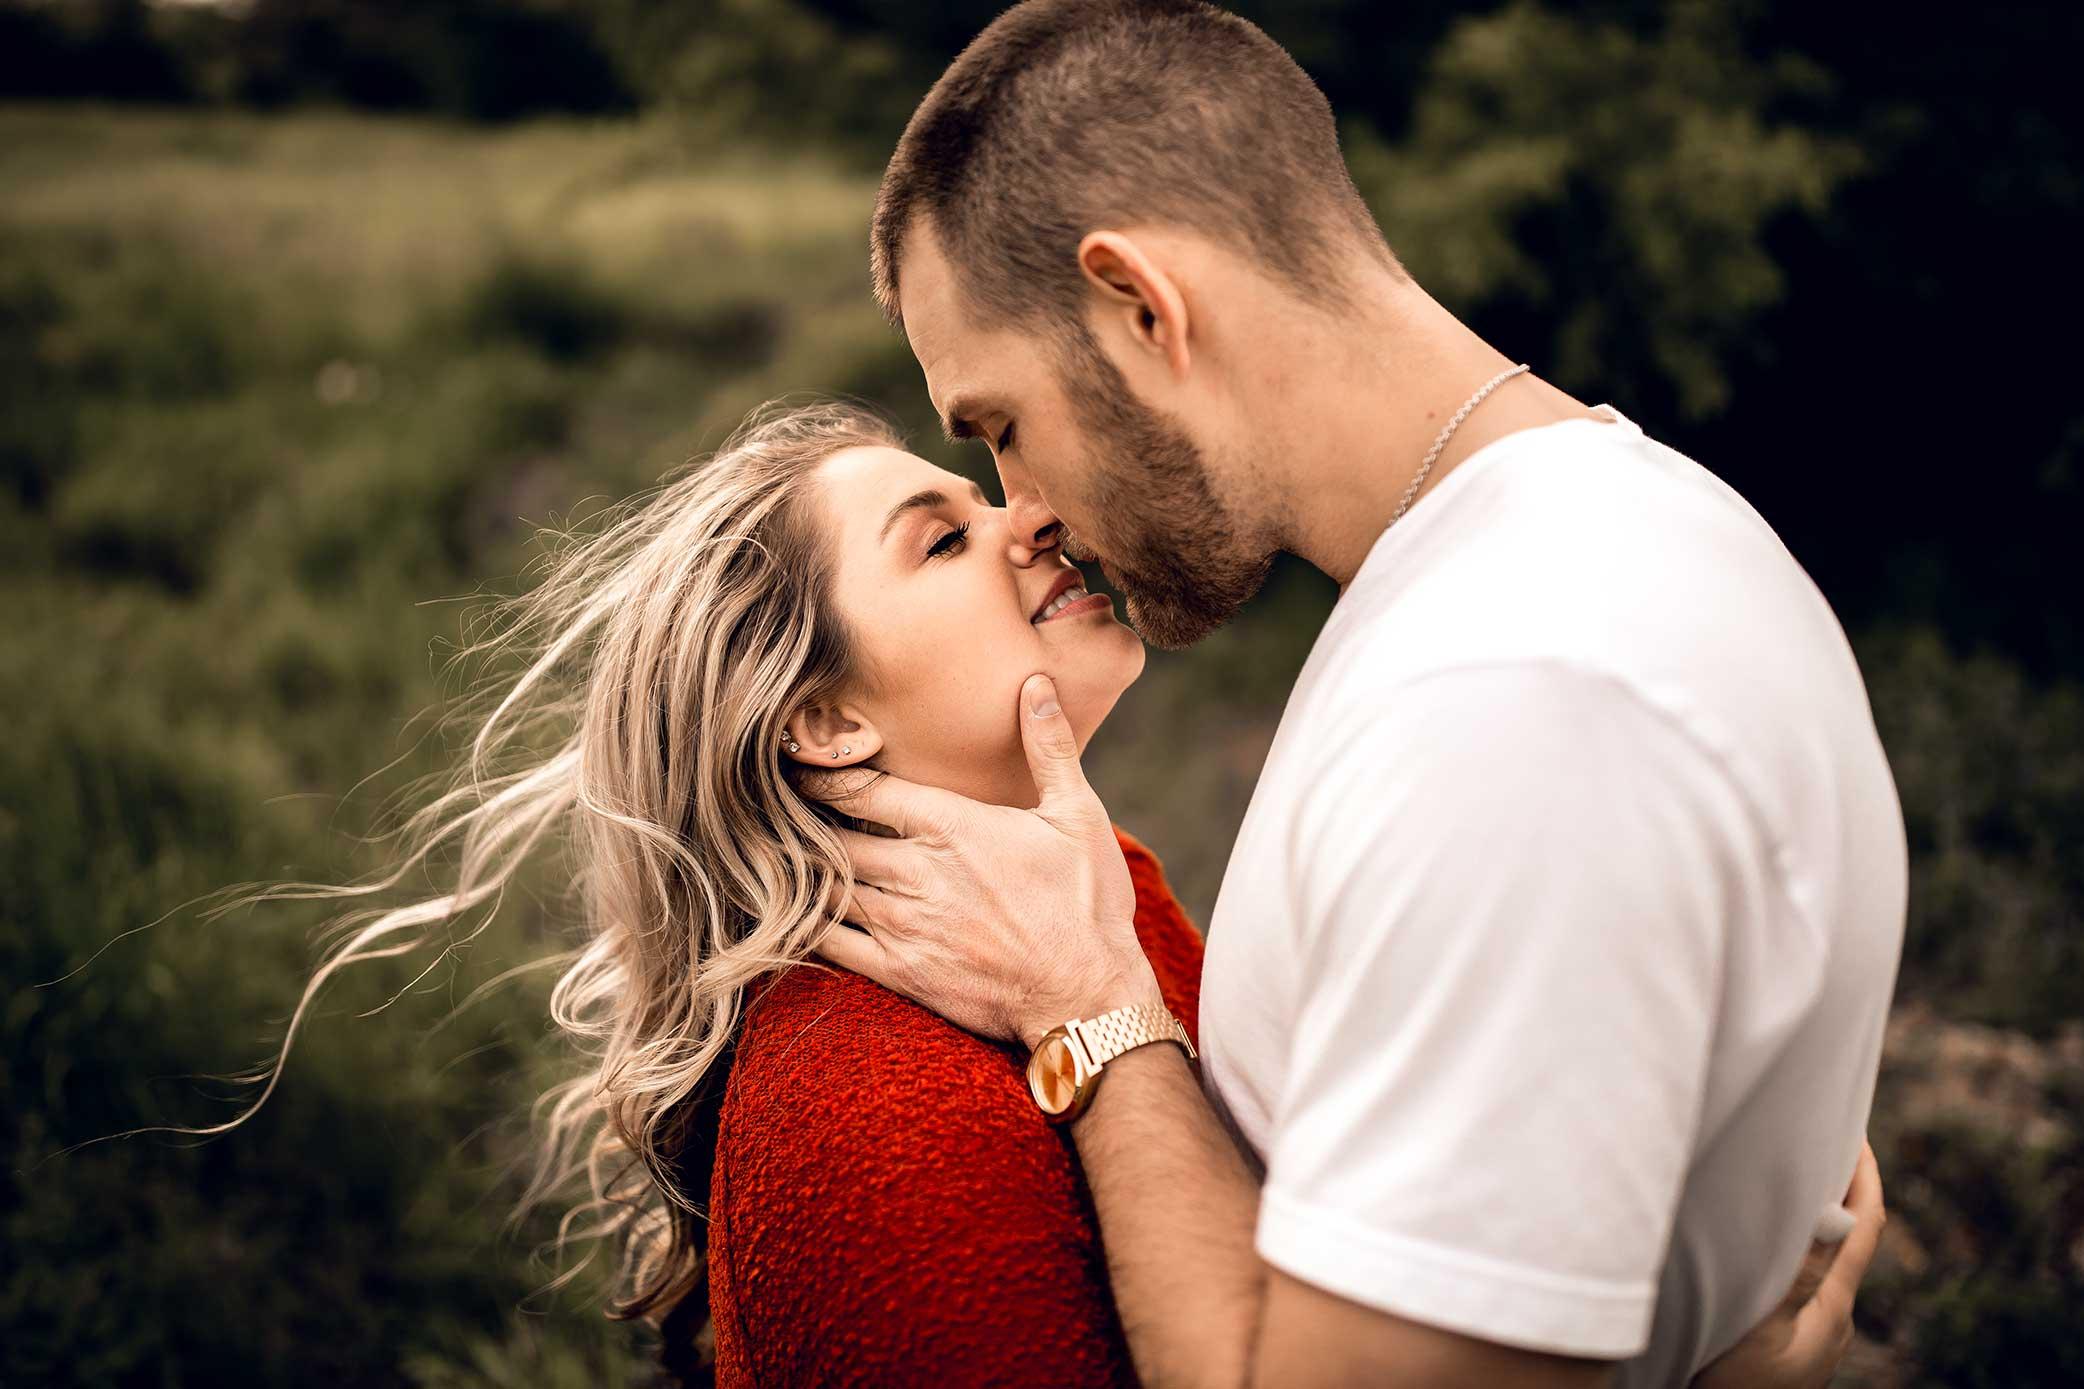 shelby-schiller-photography-lifestyle-couples-remi-colt-outdoor-jeep-adventure-34.jpg